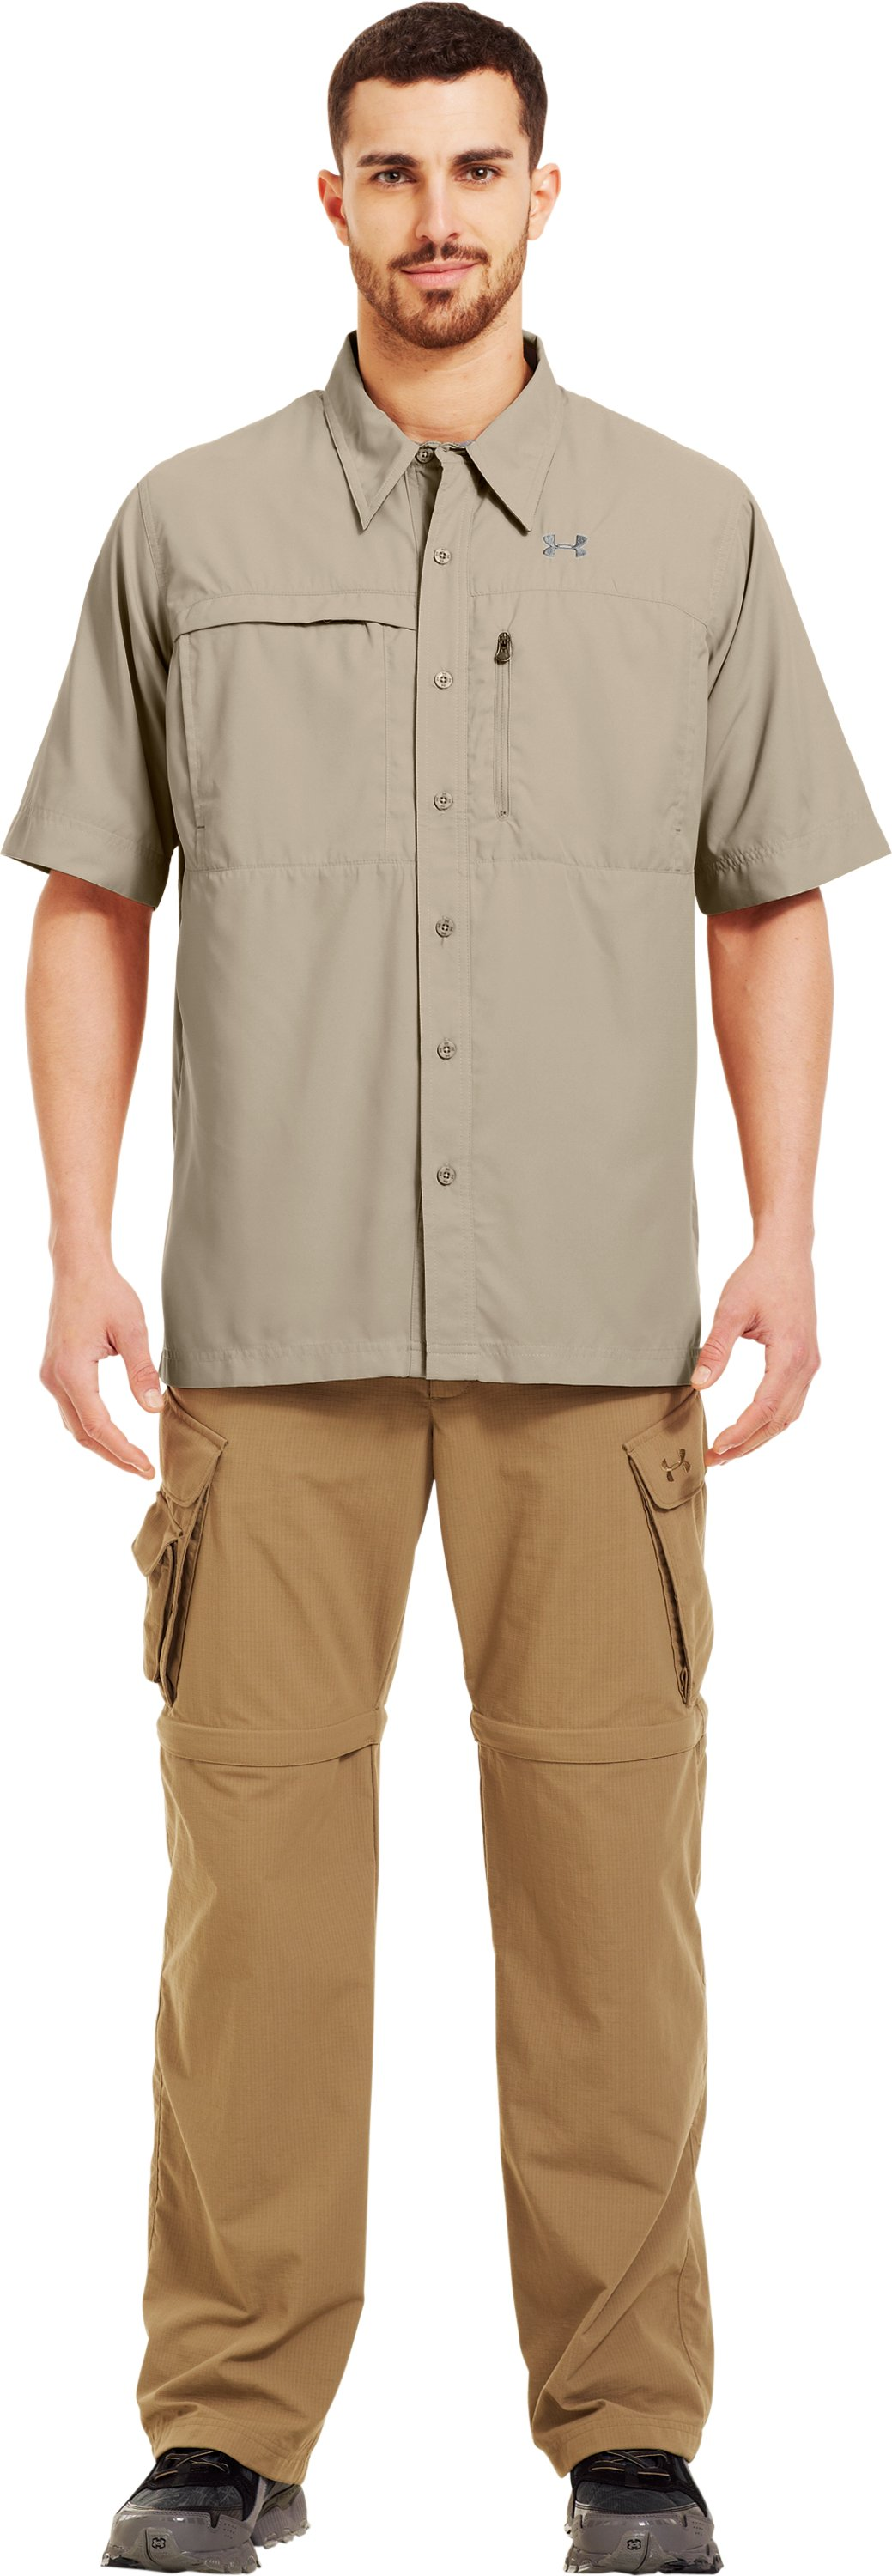 Men's Flats Guide Short Sleeve Shirt, Desert Sand